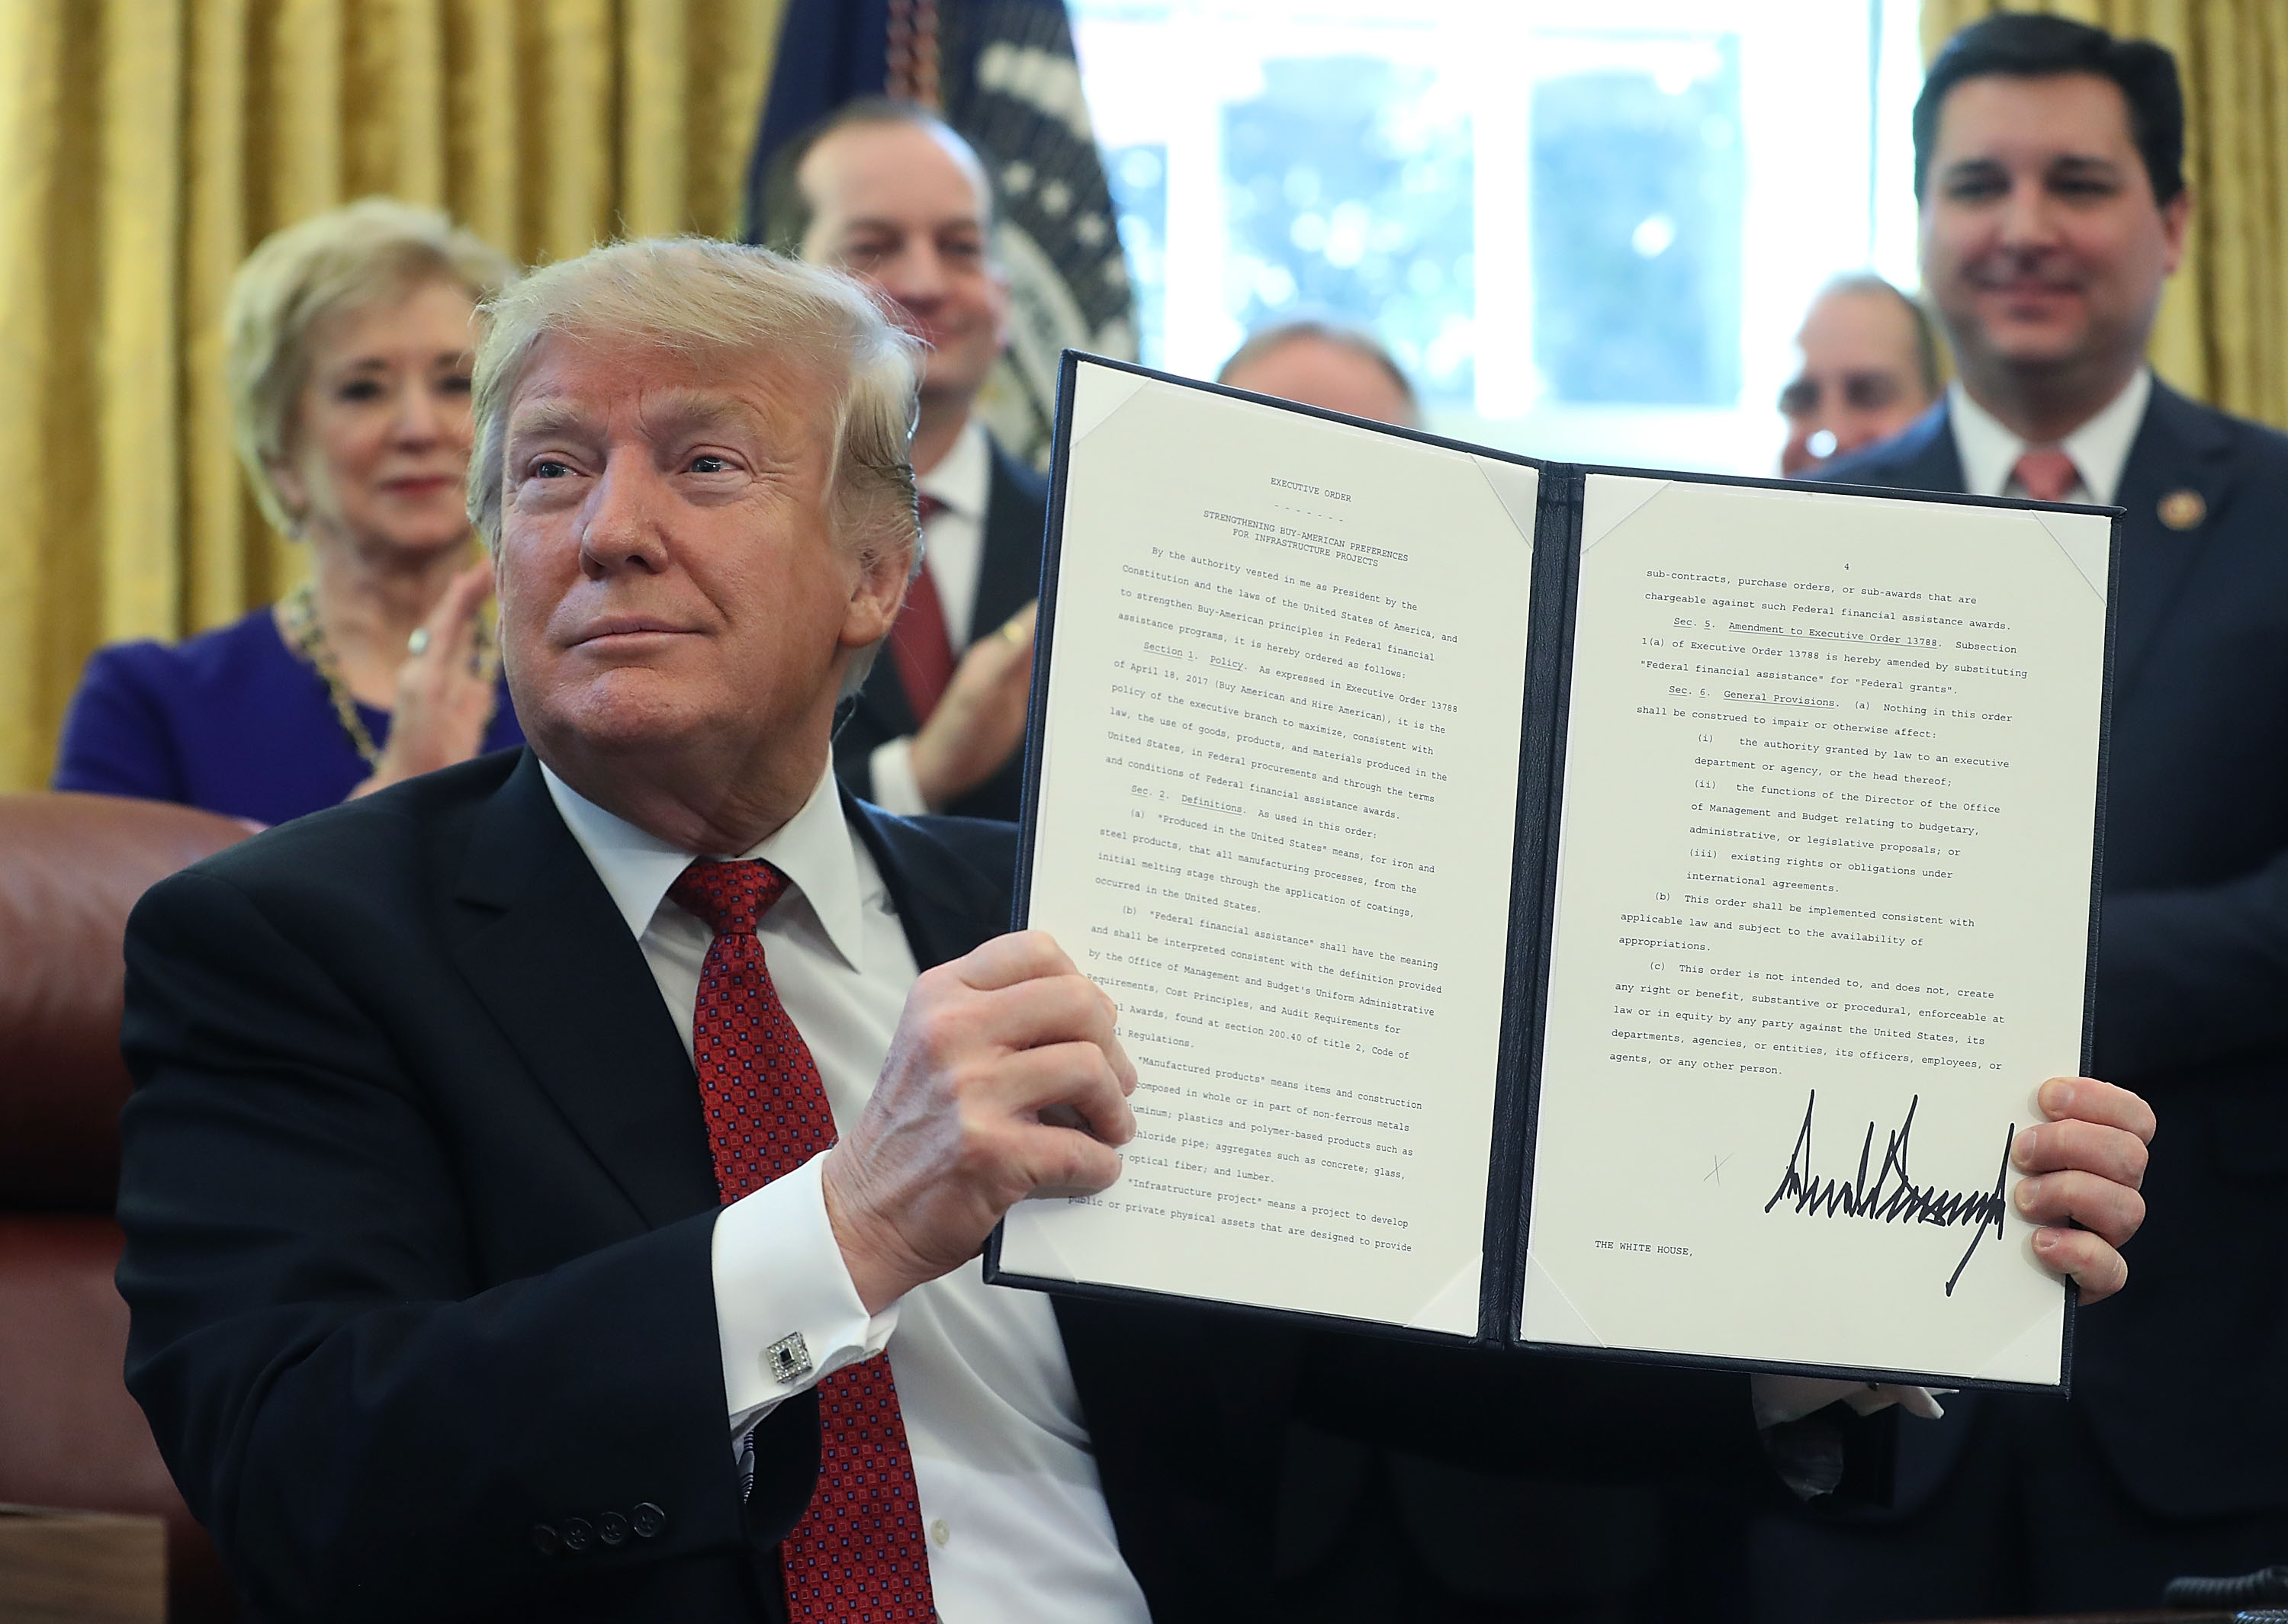 WASHINGTON, DC - JANUARY 31: U.S. President Donald Trump holds up an executive order he signed during a meeting with members of Congress and American manufacturers, to strengthen the administrationÕs buy American policy, in the Oval office on January 31, 2019 in Washington, DC. (Photo by Mark Wilson/Getty Images)